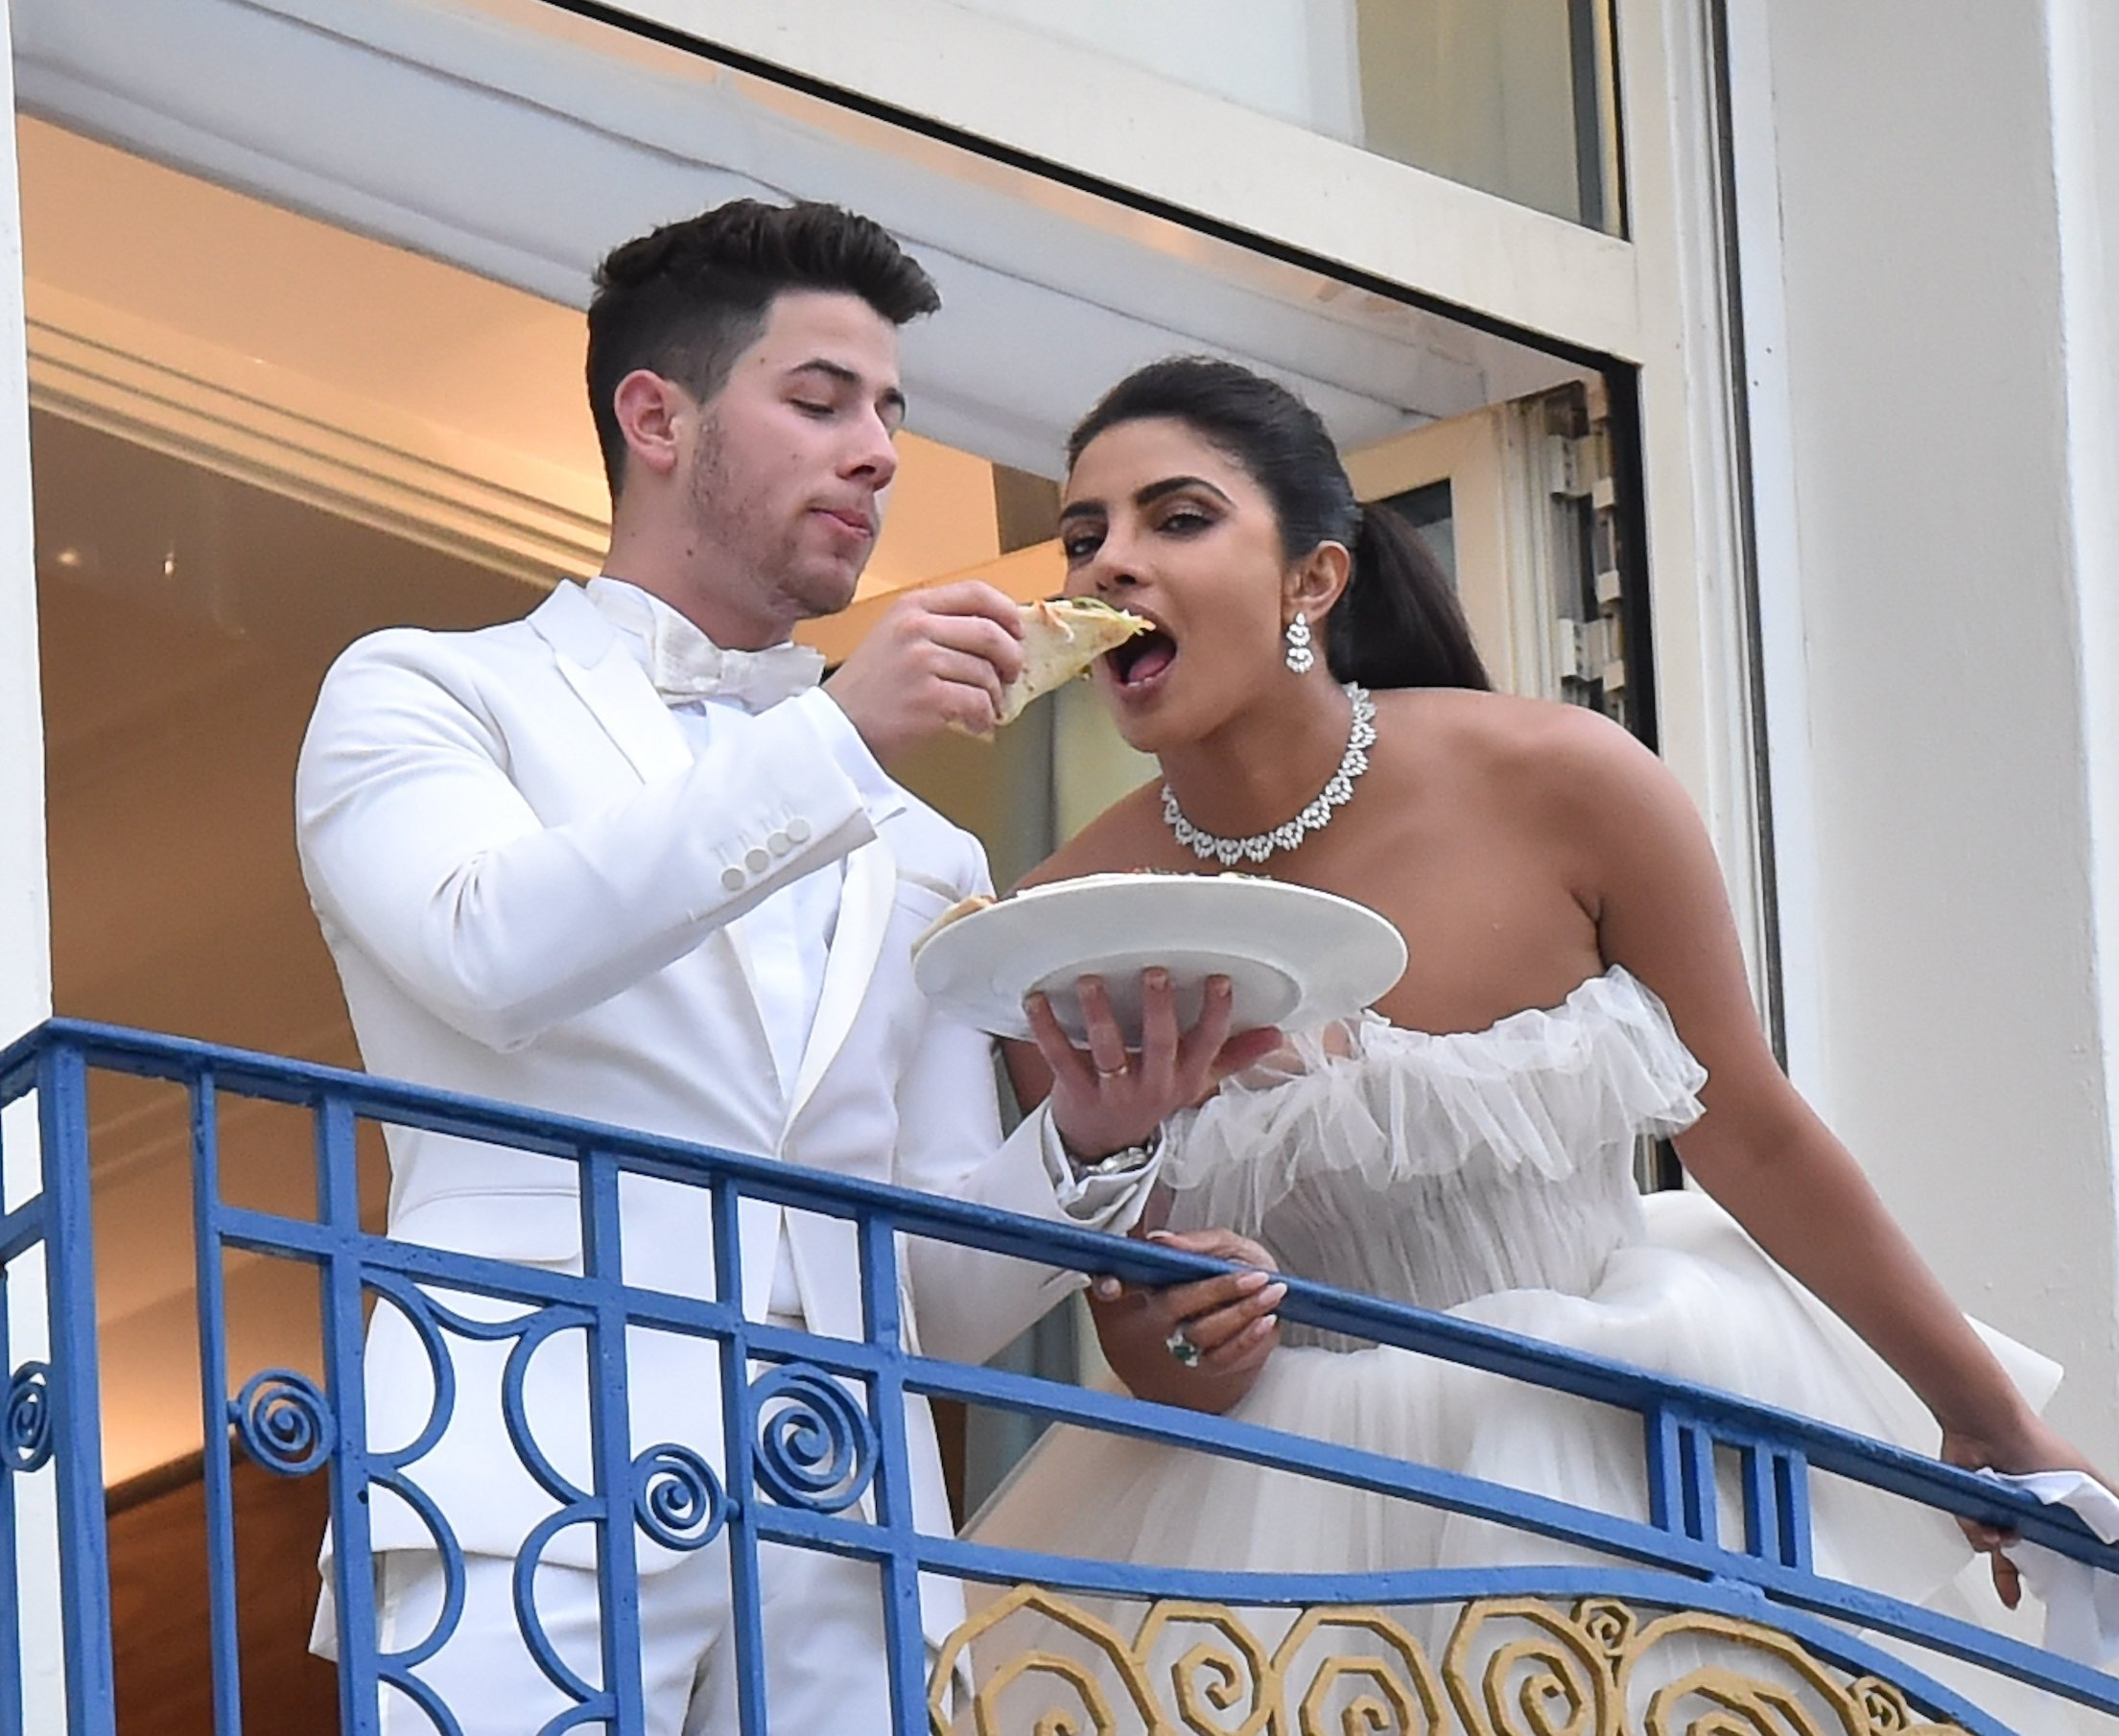 Nick Jonas & Priyanka Chopra are seen at the Martinez hotel in their suite feeding Pizza to each other straight after walking the red carpet in Cannes. 18 May 2019, Image: 434518164, License: Rights-managed, Restrictions: World Rights, Model Release: no, Credit line: Profimedia, Mega Agency